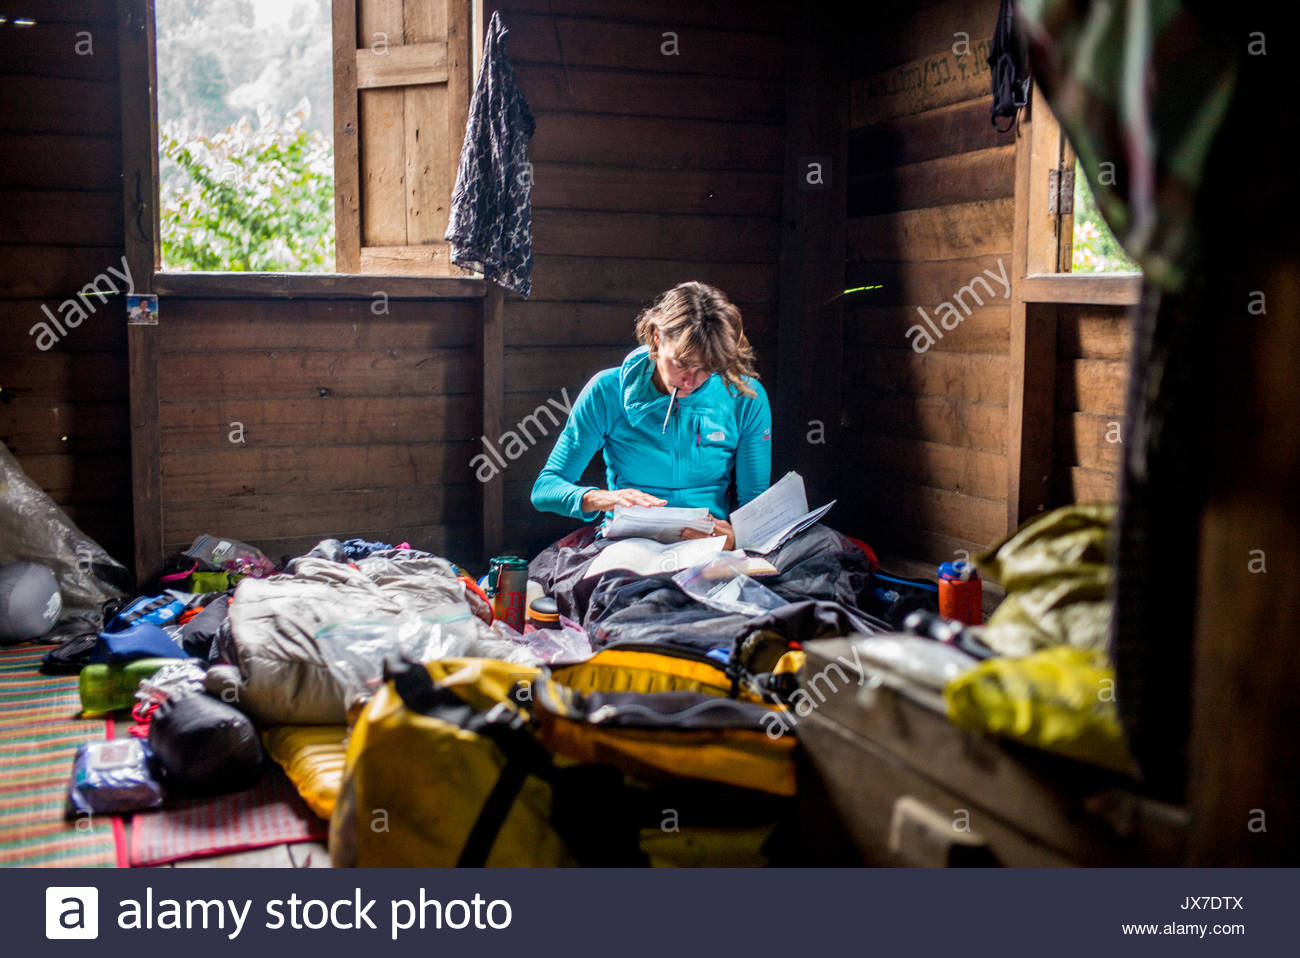 The expedition leader reviews documents and plans for the team. - Stock Image